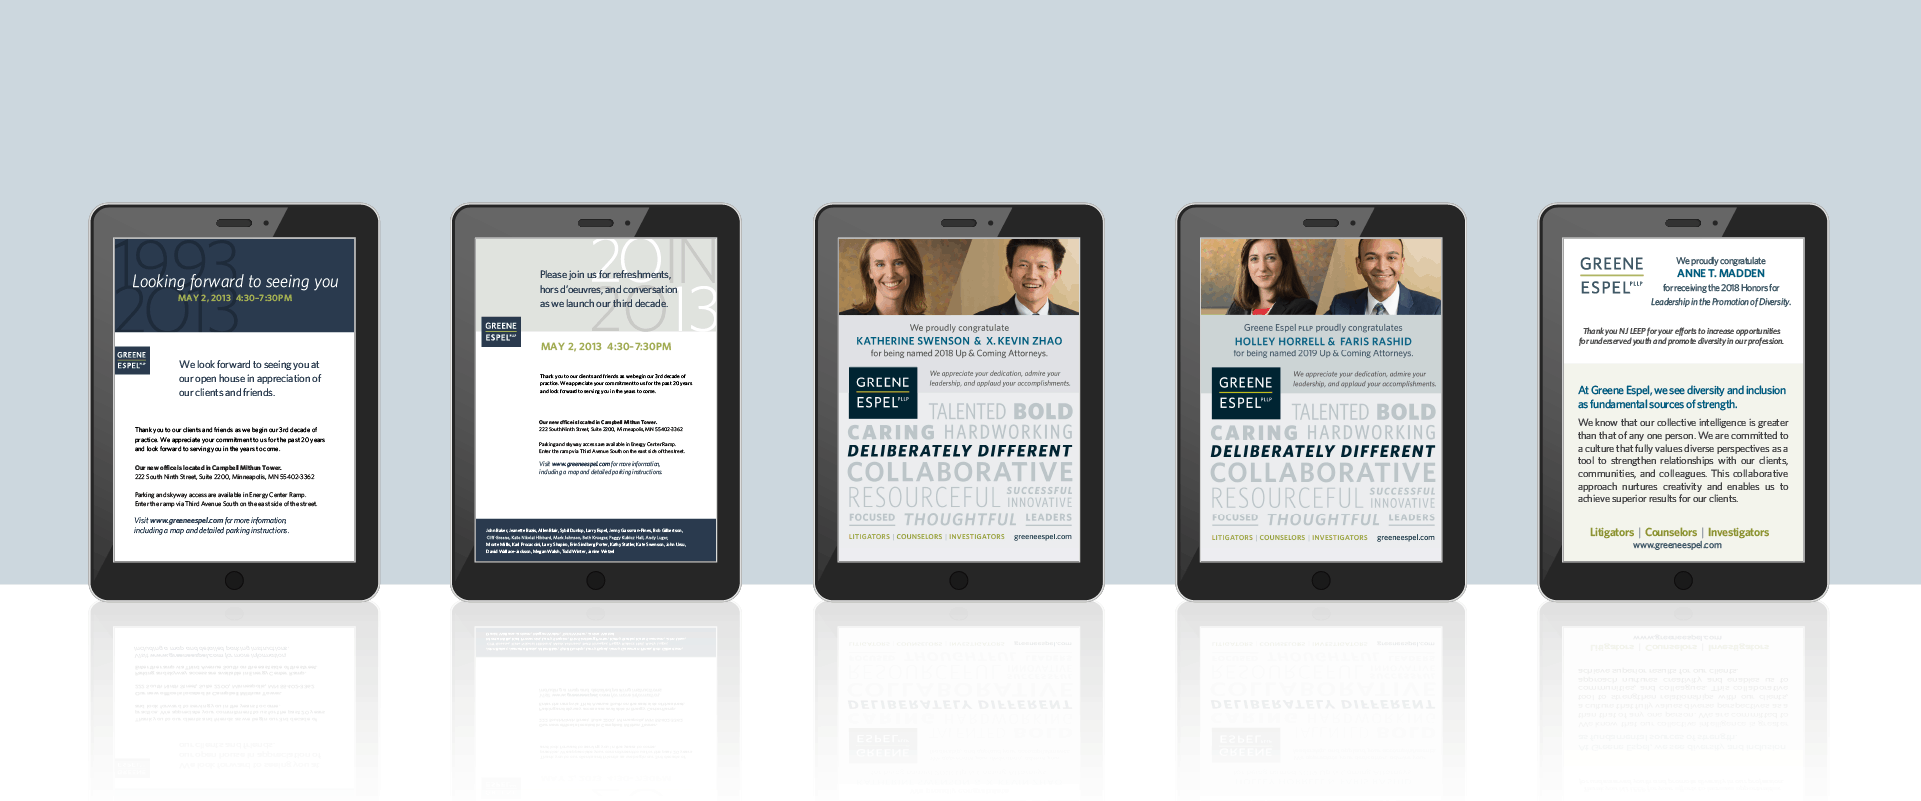 greene espel law firm email design